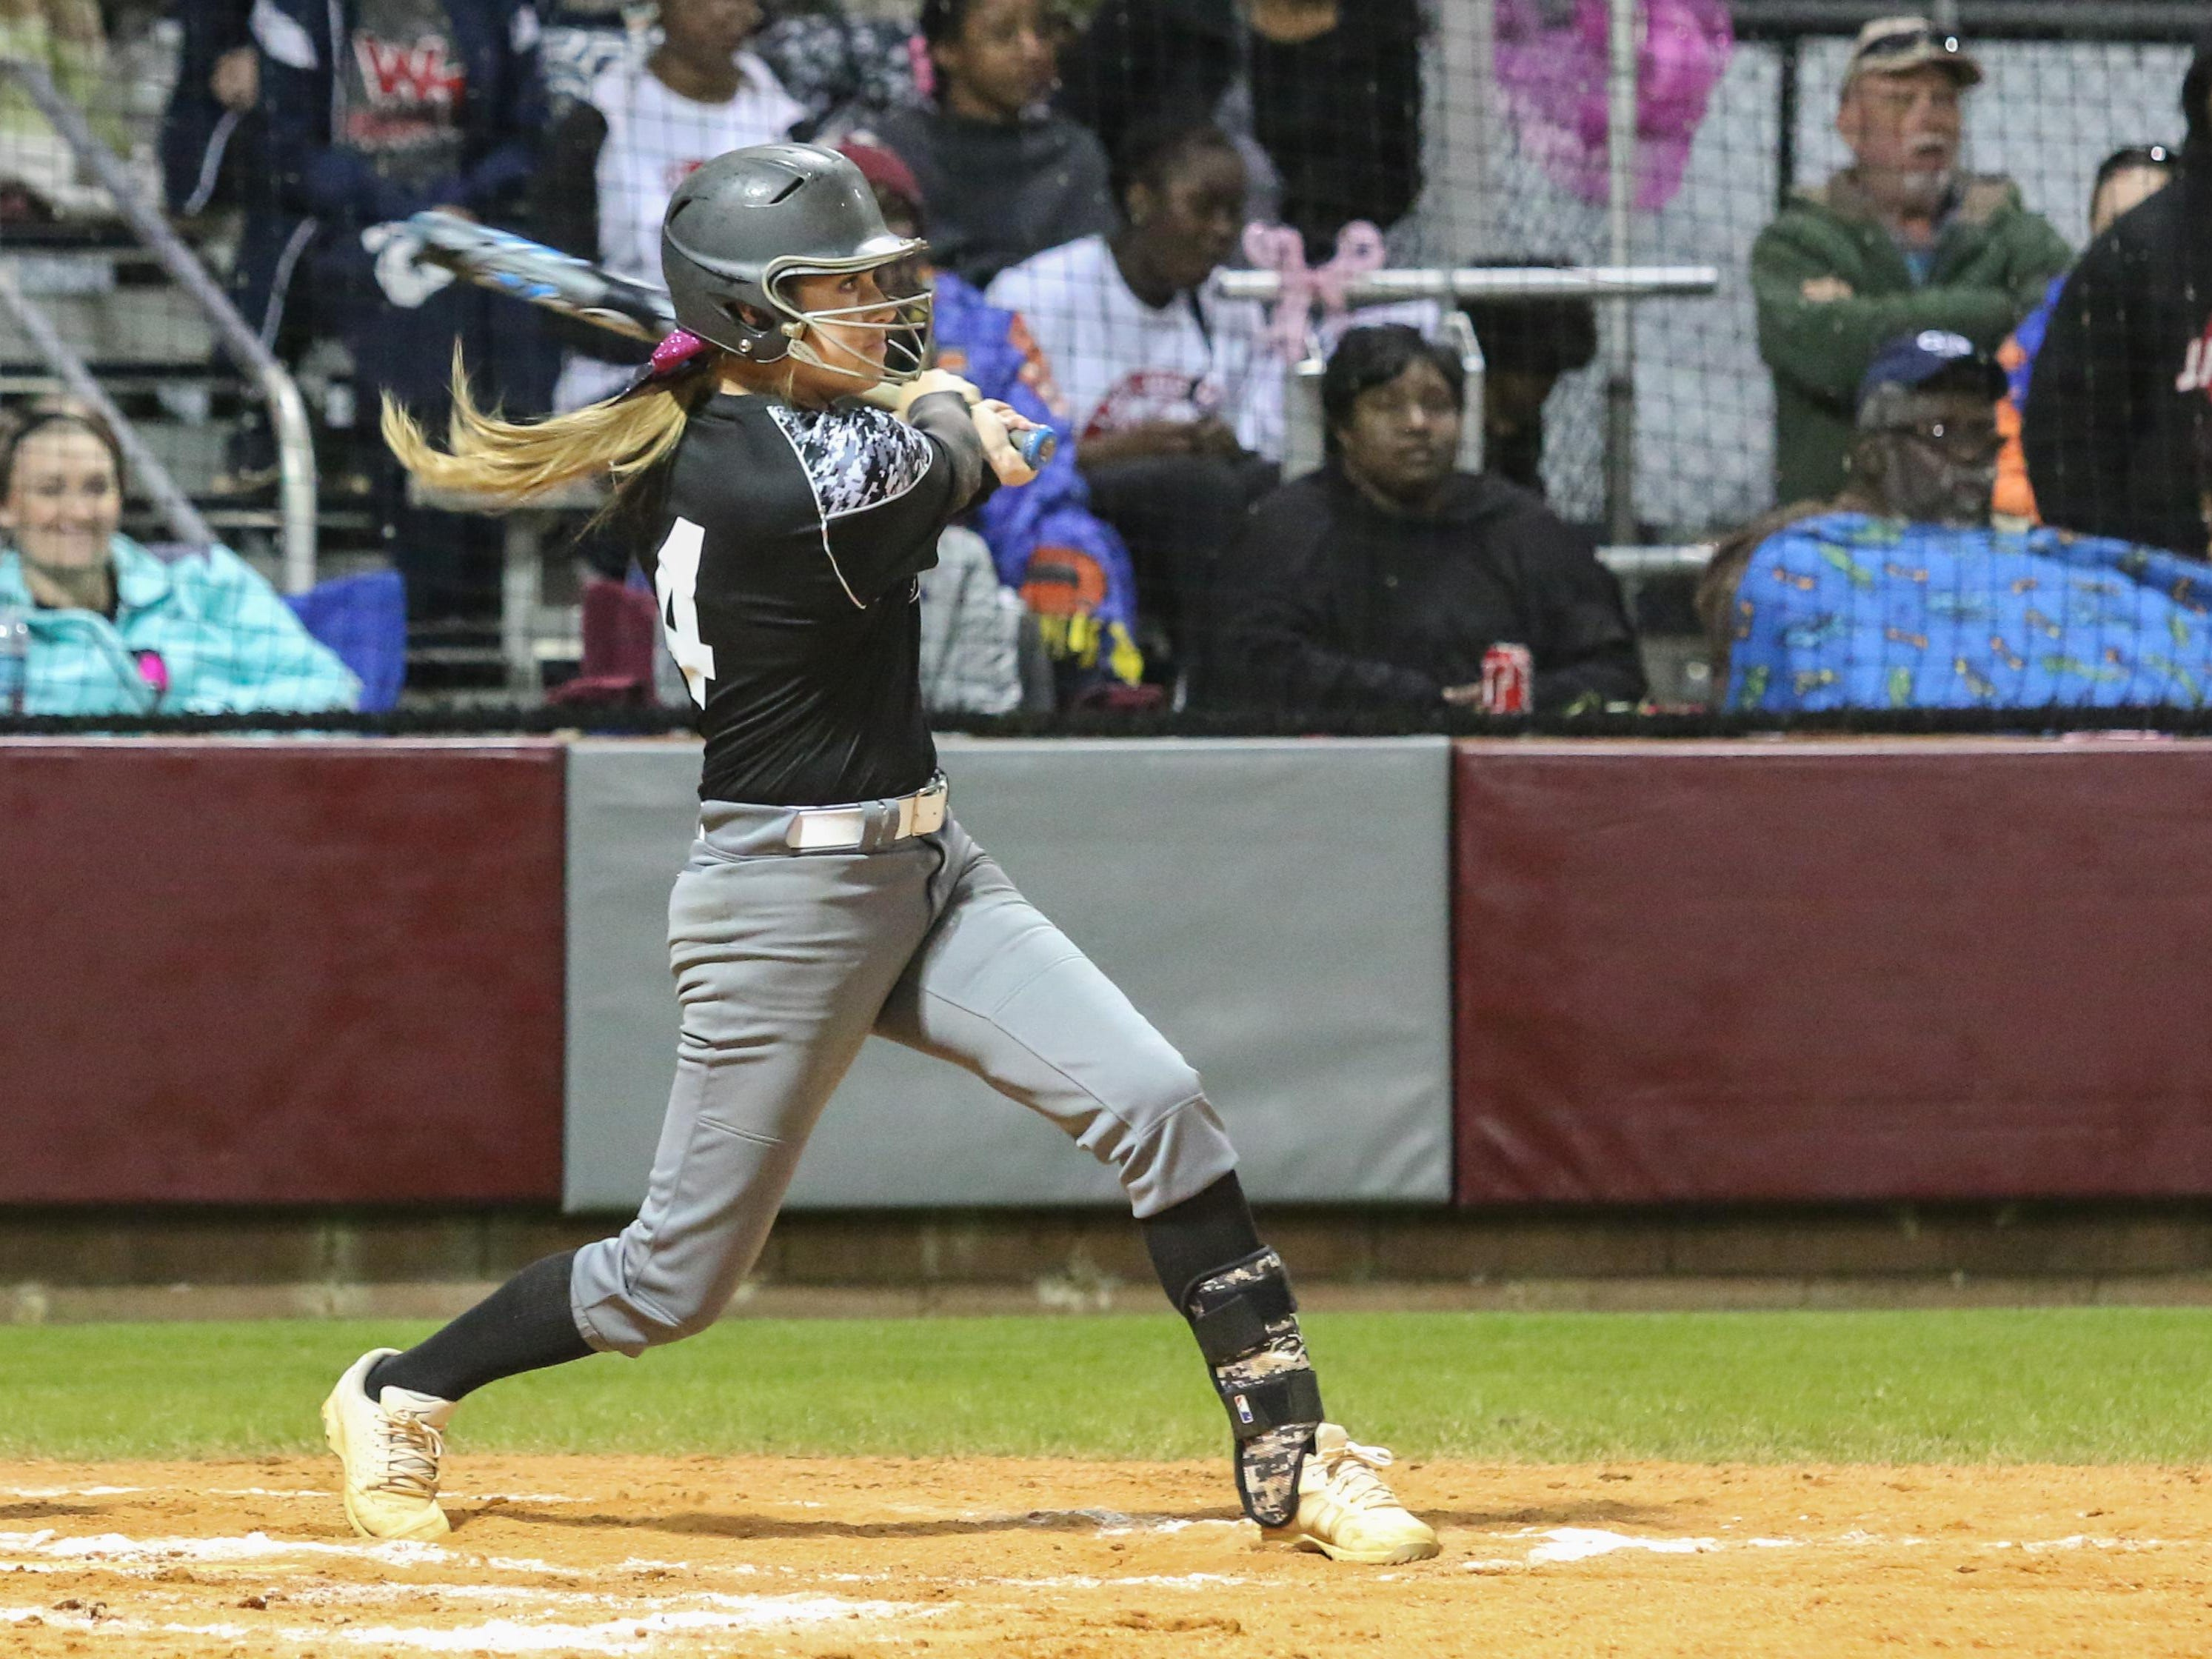 Tate's Savannah Rowell hits the ball Monday night during the 7th Annual Strike Out Cancer benefit softball game at Tate High School. The event helps raise thousands of dollars for the American Cancer Society.